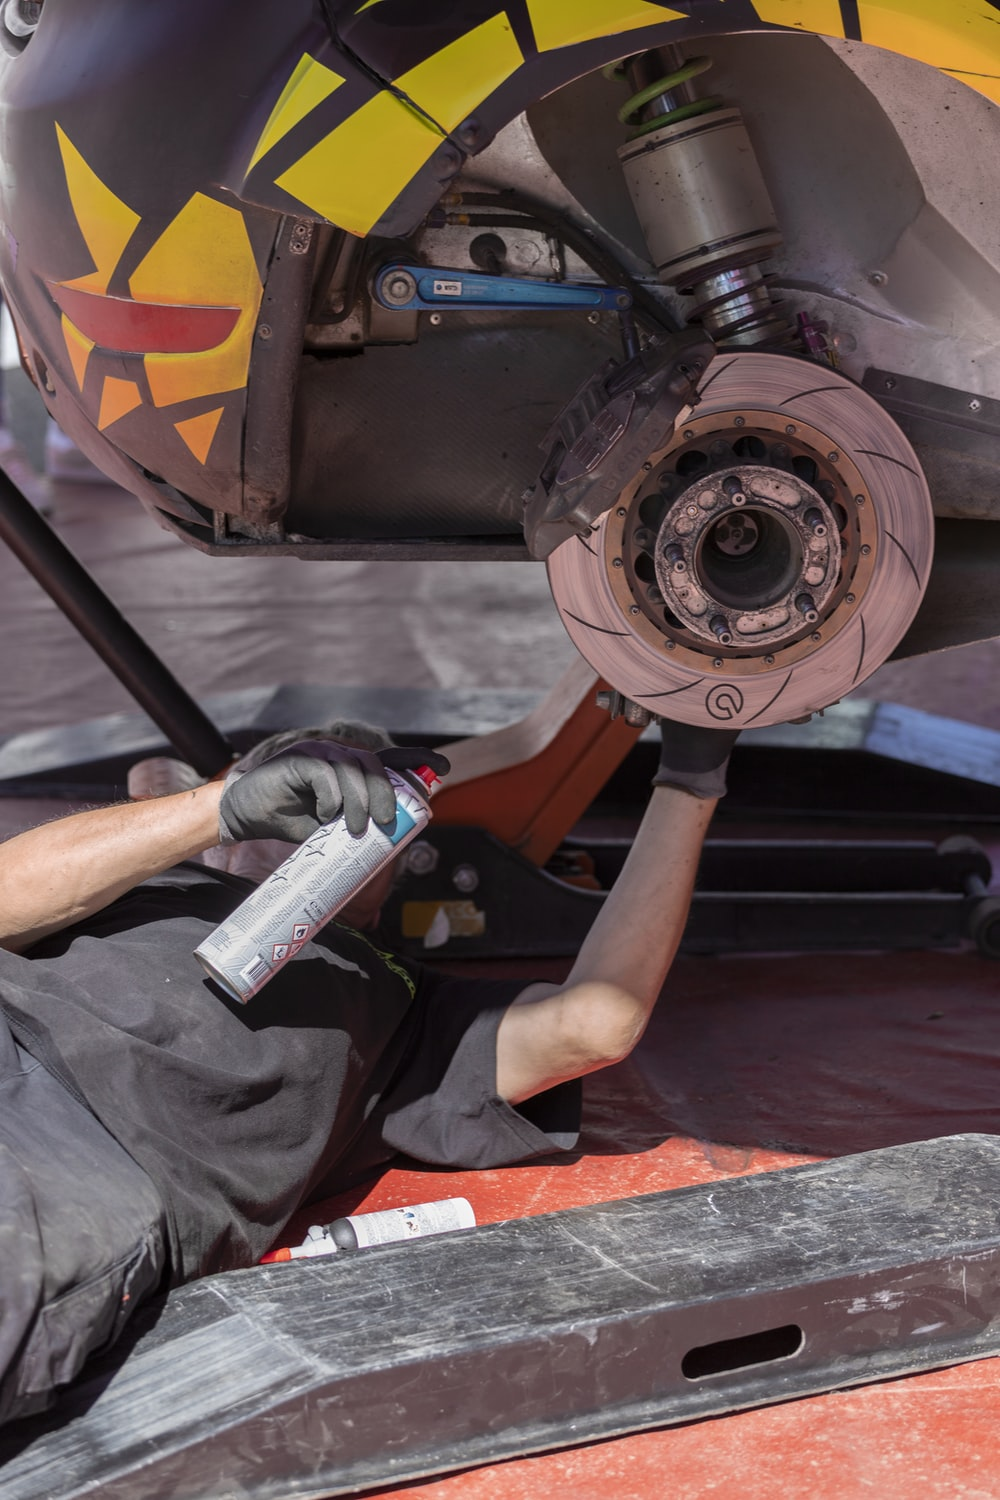 man fixing vehicle while holding spray can